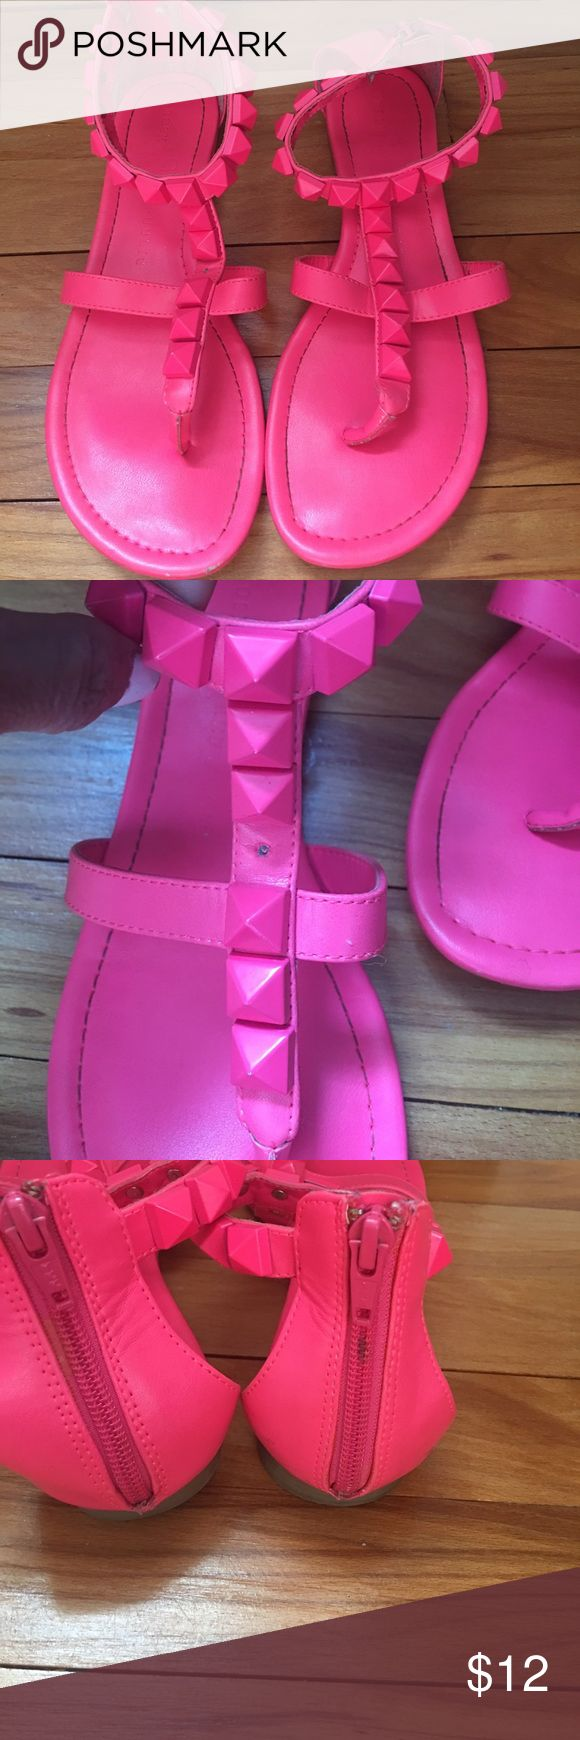 Neon pink studded sandal These are cute neon pink rock and republic studded sandal. See pics. There is one stud missing on the front. Always intended on taking one off the side in the back and putting it there but just didn't ! Rock & Republic Shoes Sandals